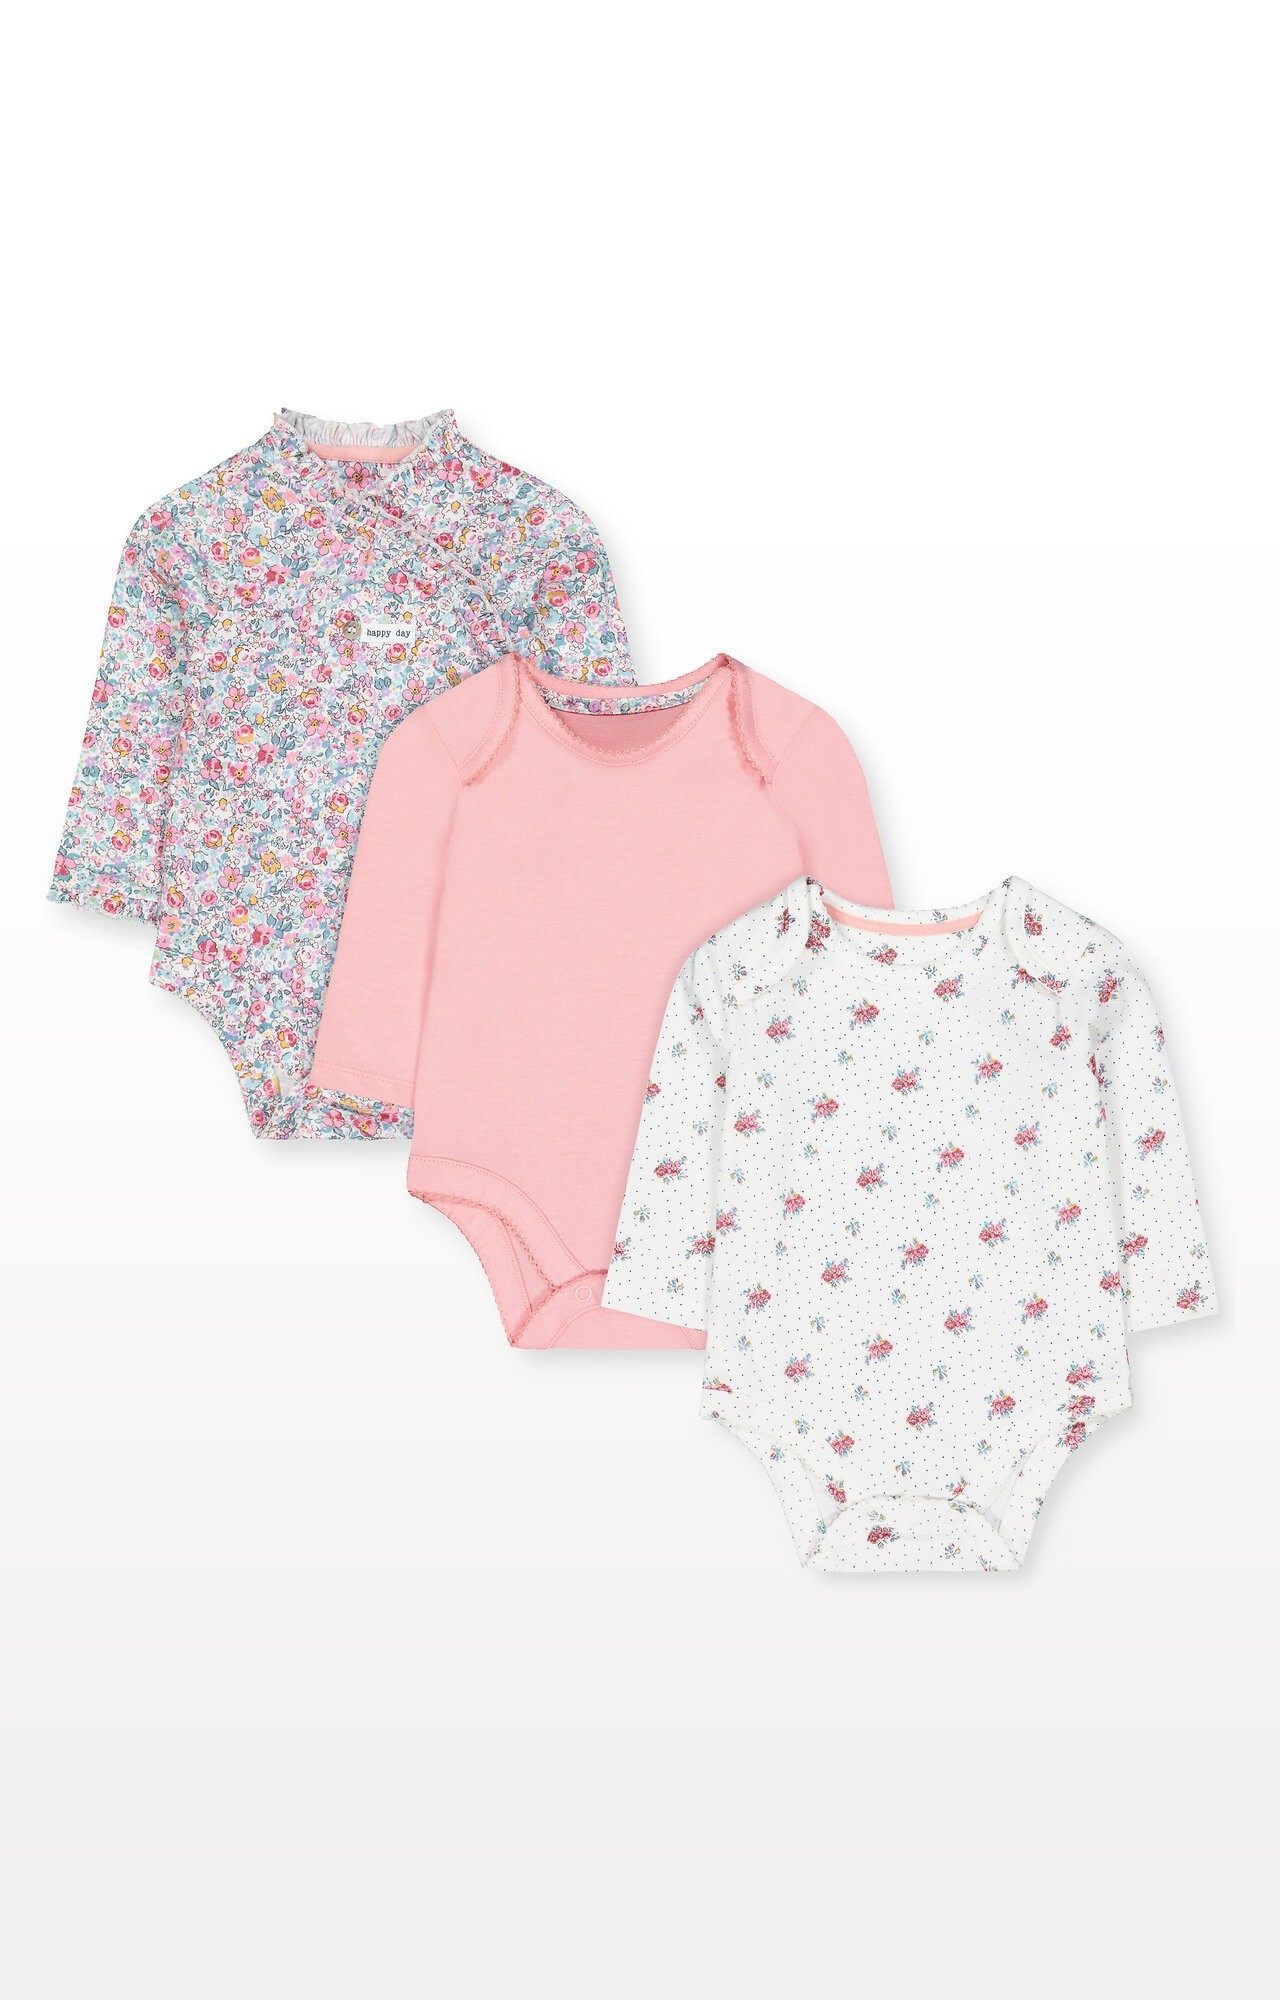 Mothercare | Floral and Pink Wrap Bodysuits - Pack of 3